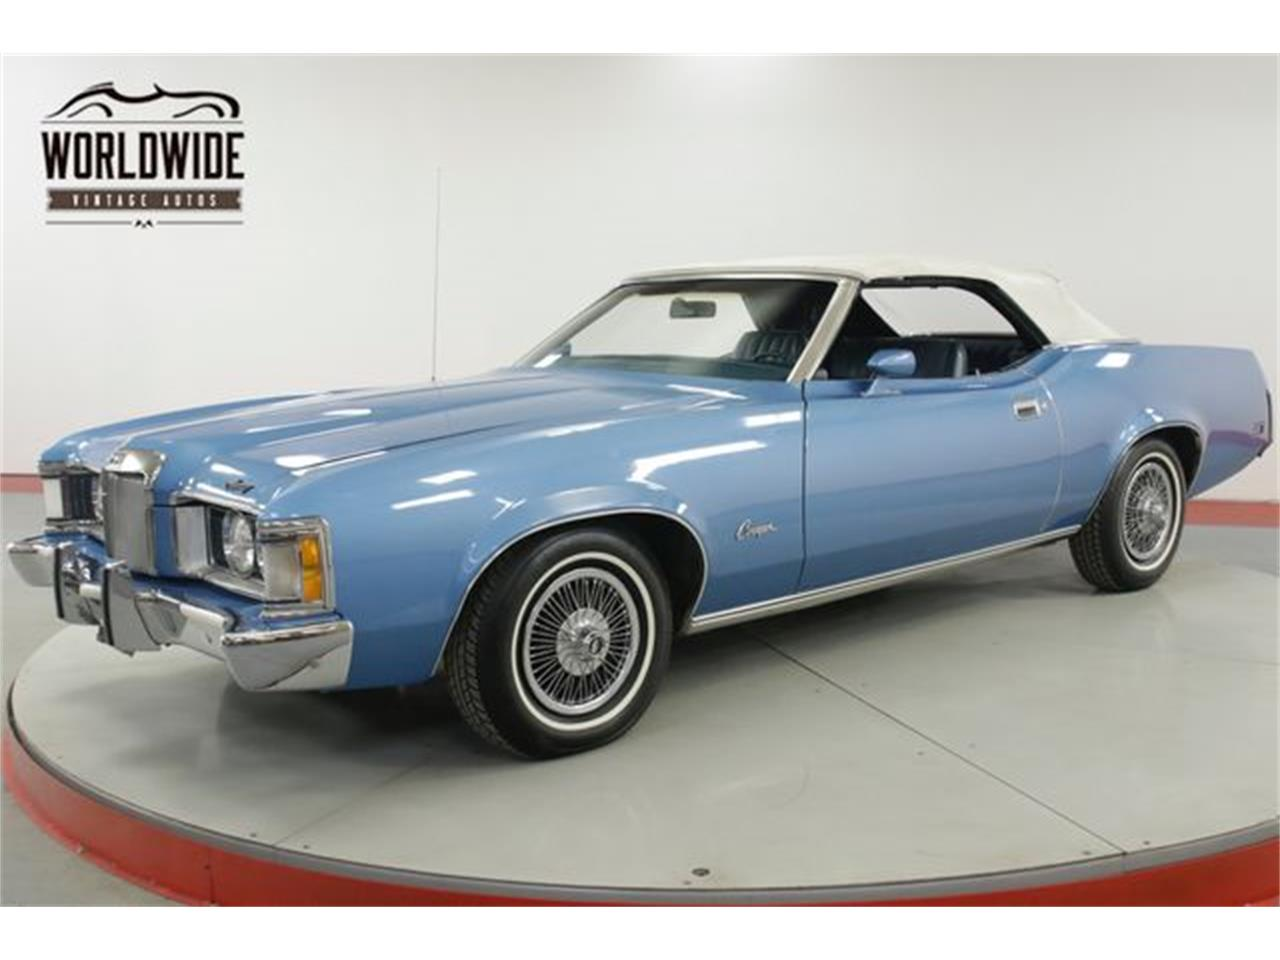 Large Picture of Classic 1973 Mercury Cougar located in Colorado - $13,900.00 Offered by Worldwide Vintage Autos - PPHY